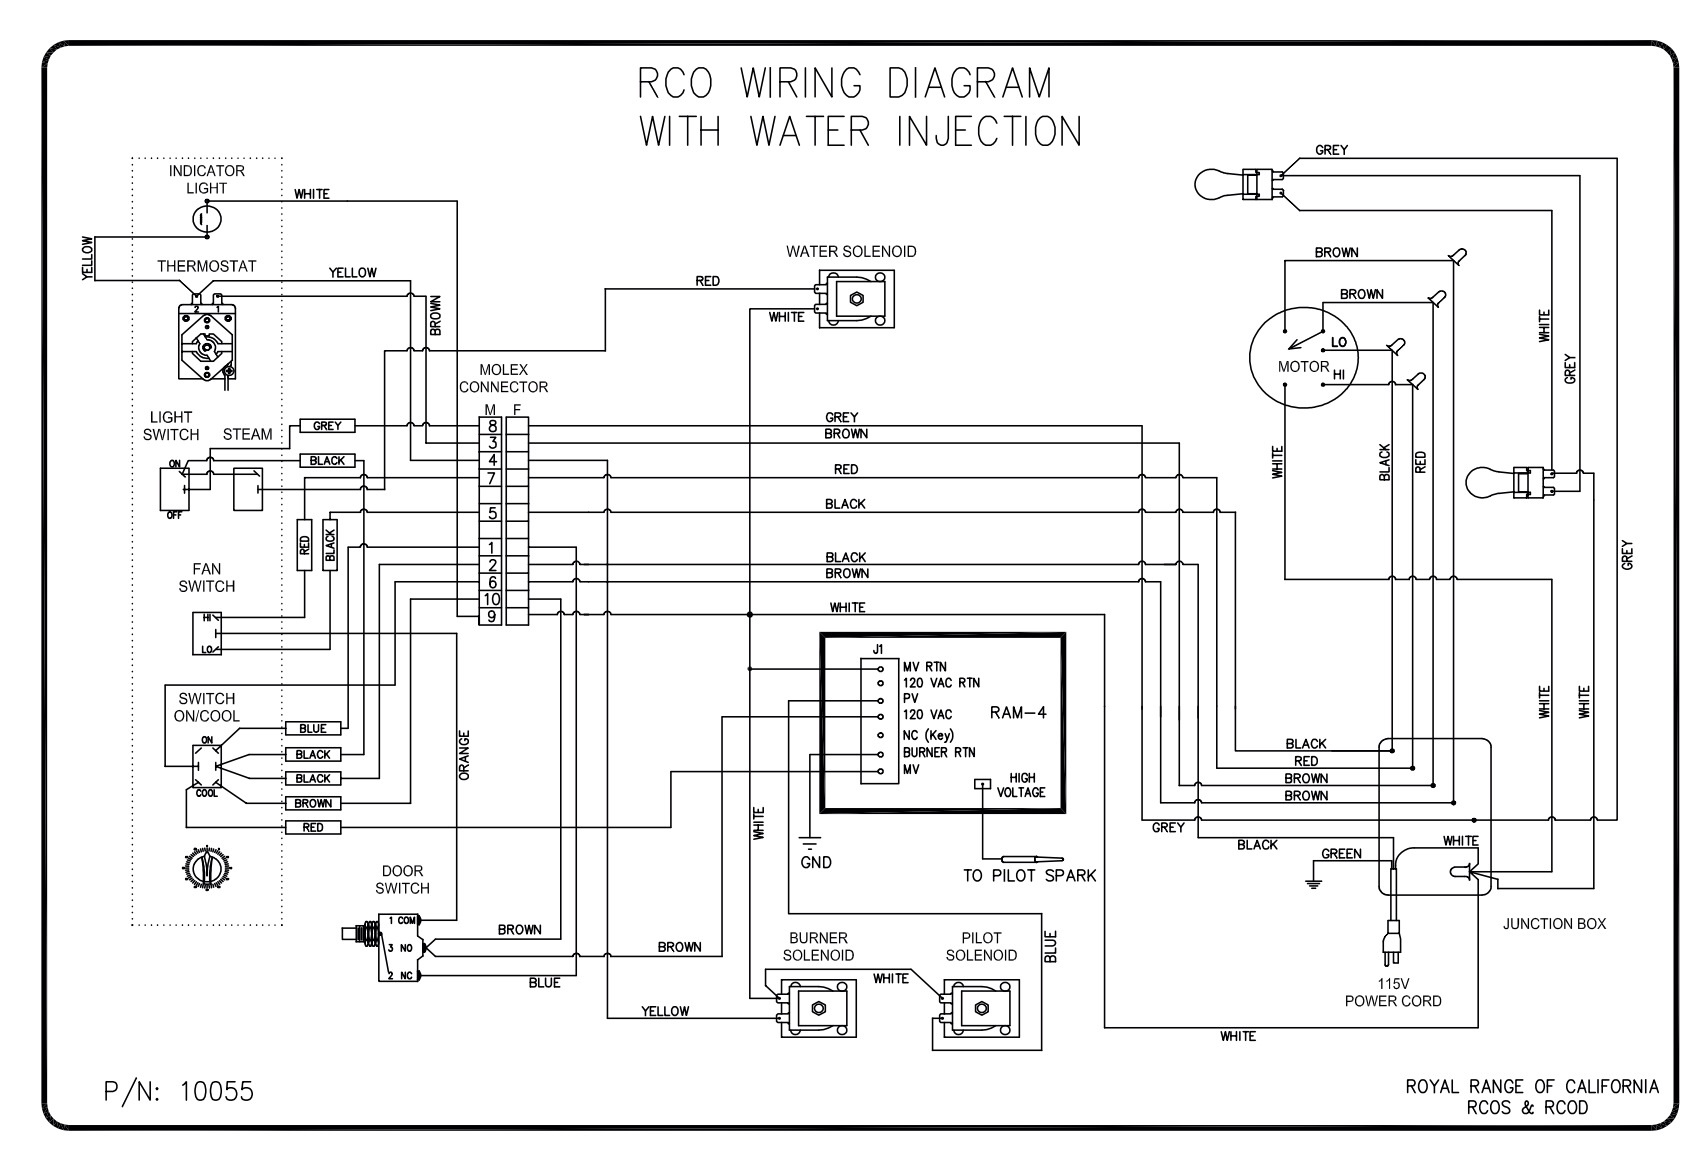 RCO w water inj prior2014 wiring diagrams royal range of california Range Plug Wiring Diagram at crackthecode.co